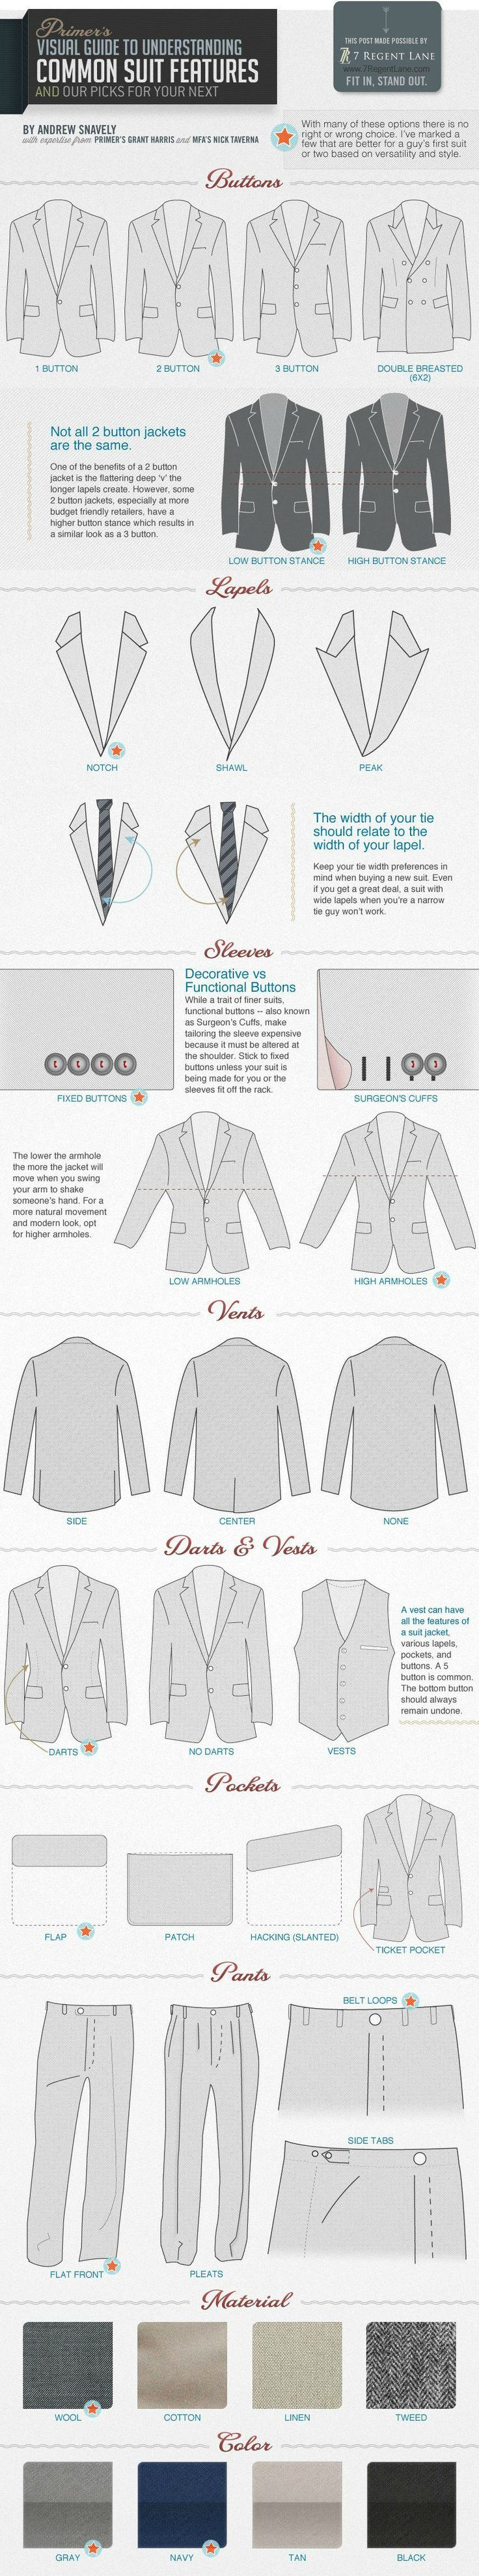 suit-features, features of a suit guide